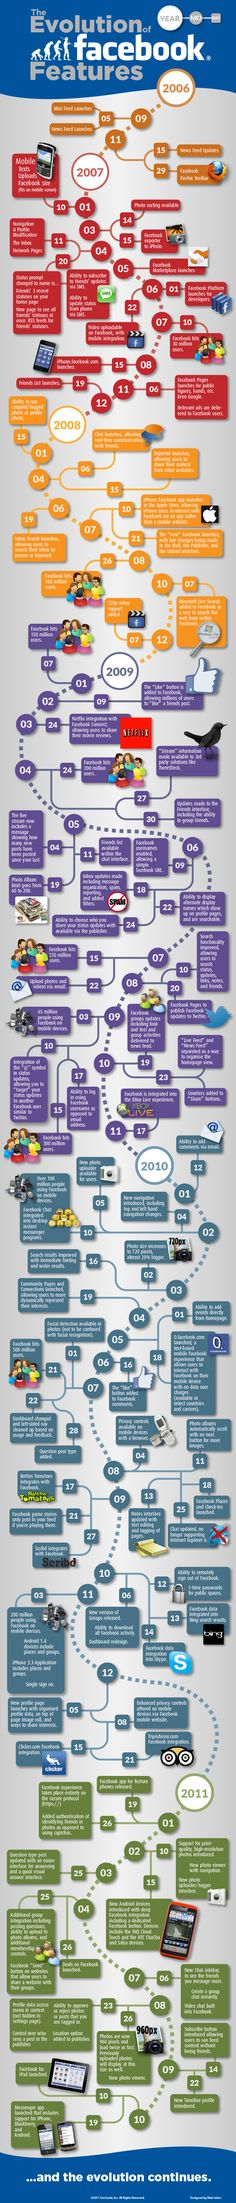 THe Evolution Of #Facebook Features. Veja o incremento de recursos no Facebook durante os anos.